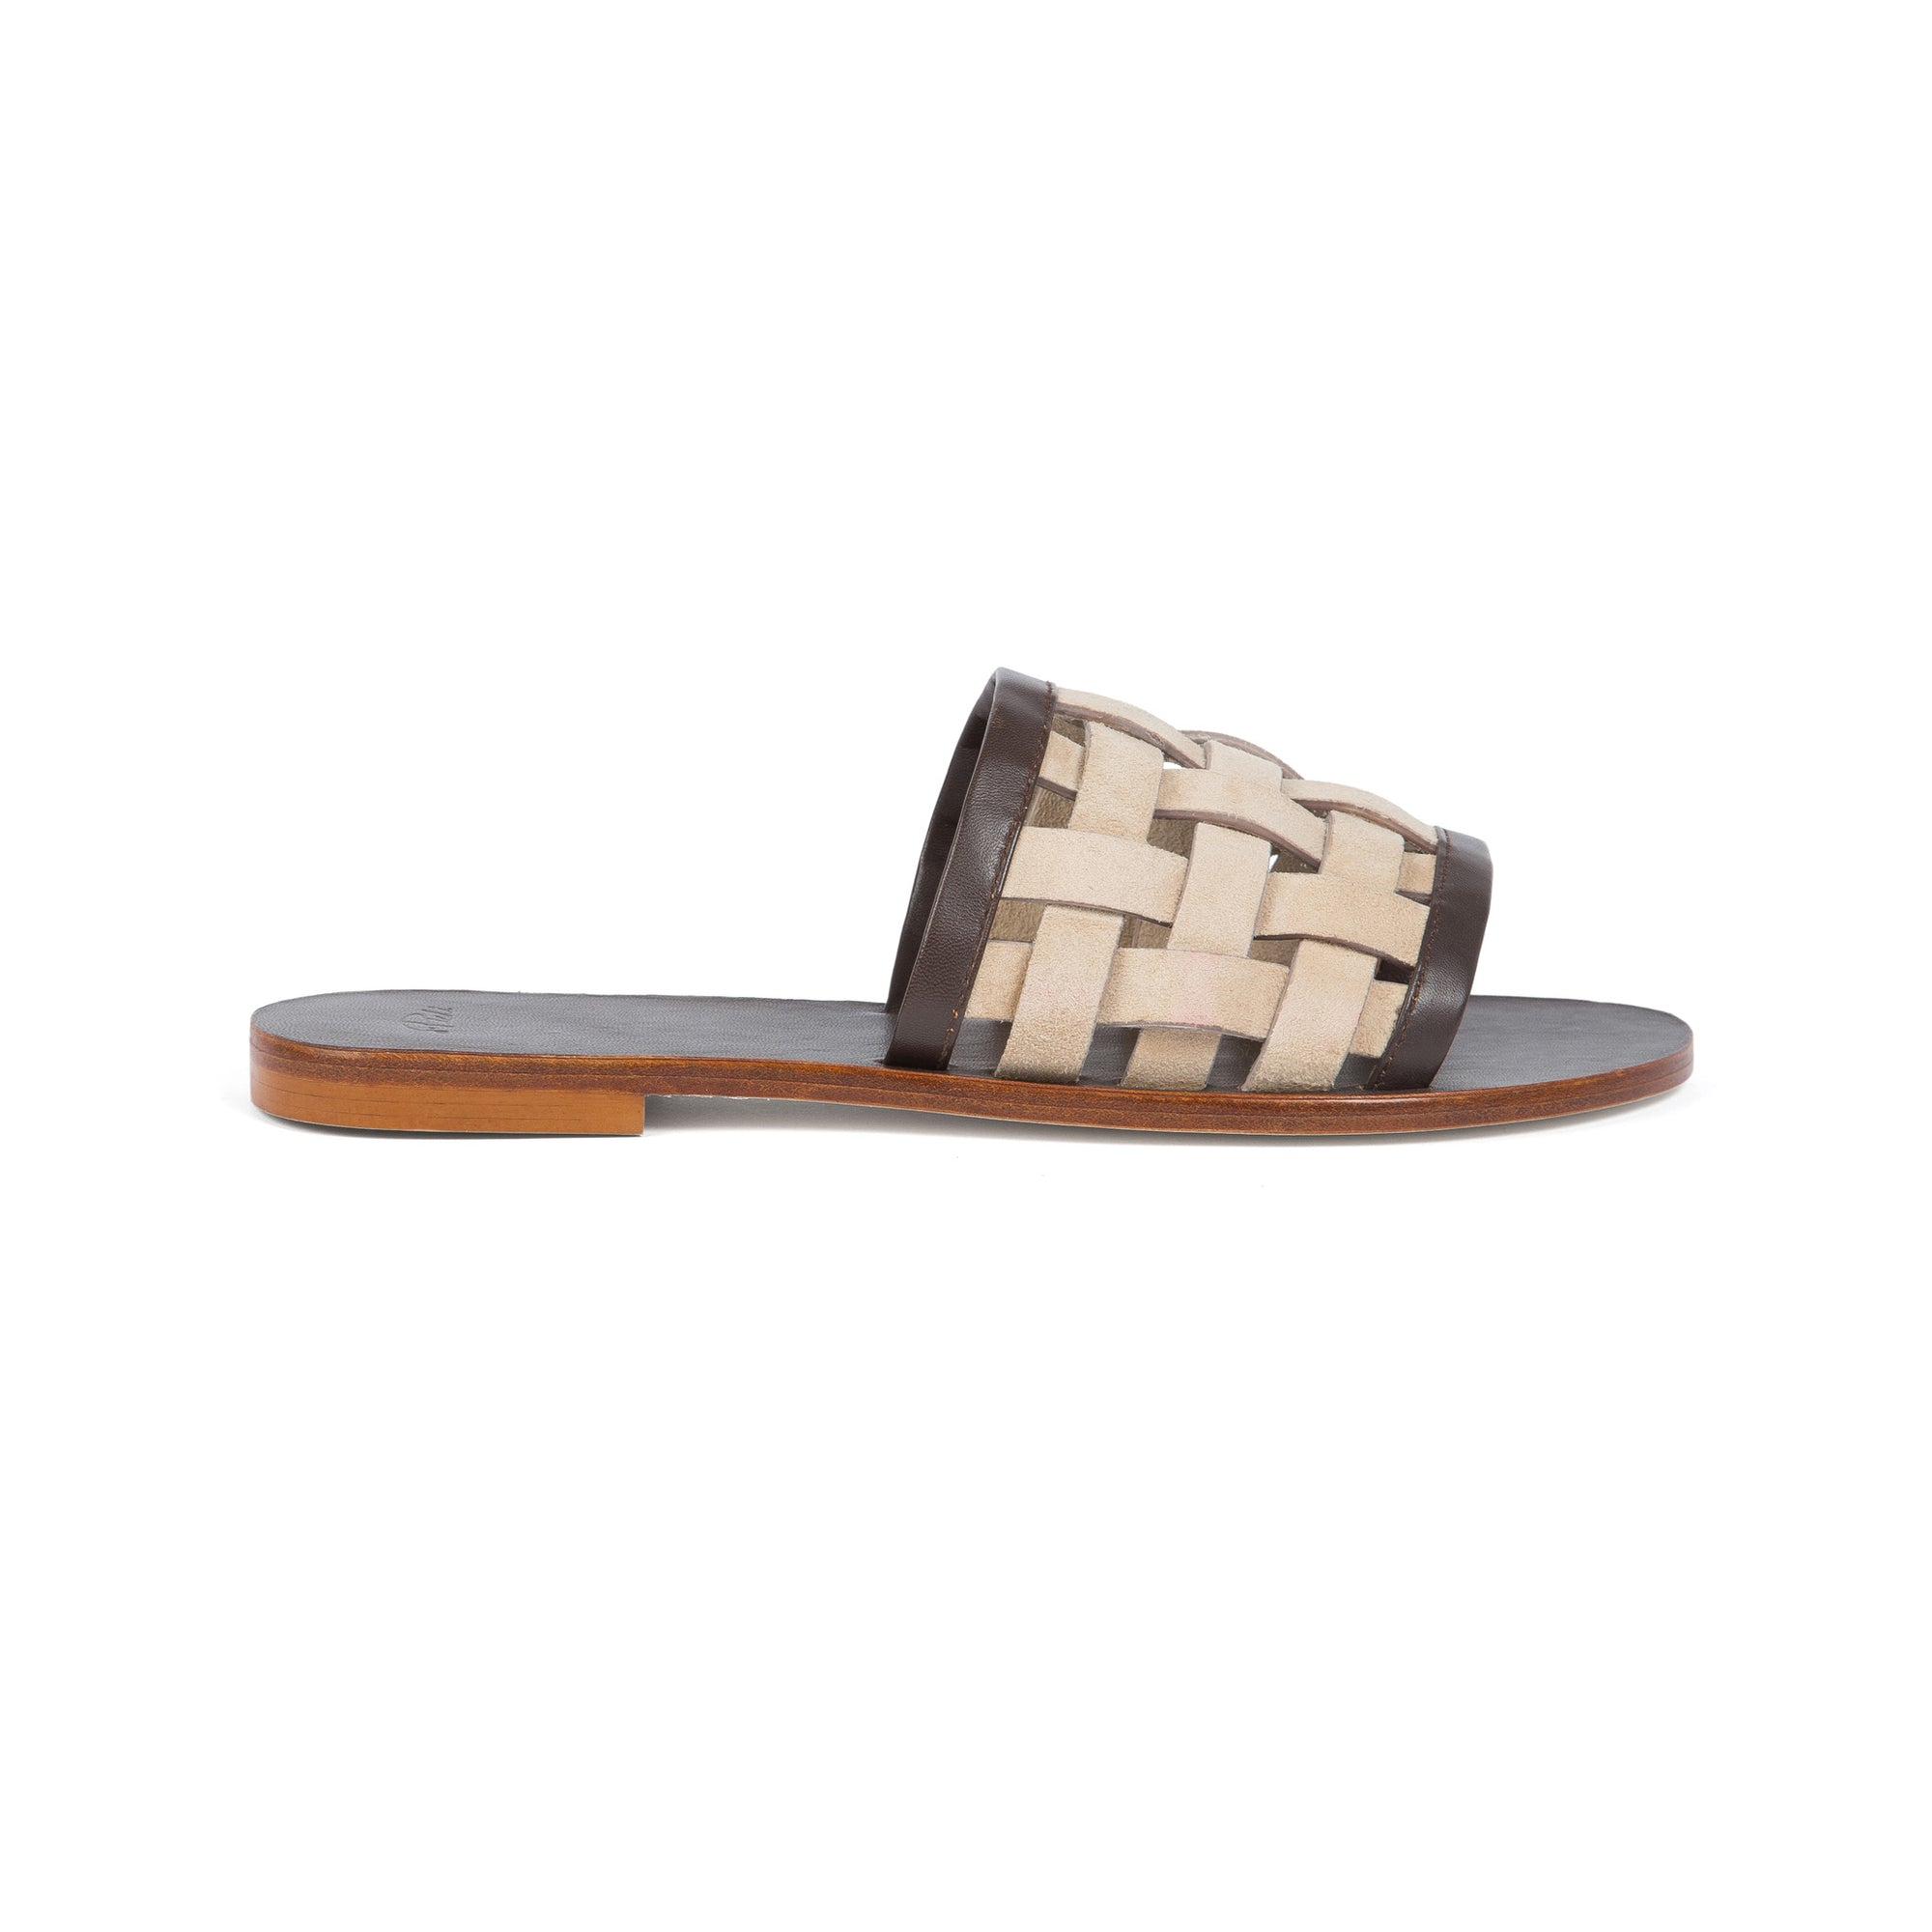 LOUNGER (Beige Suede/Brown)